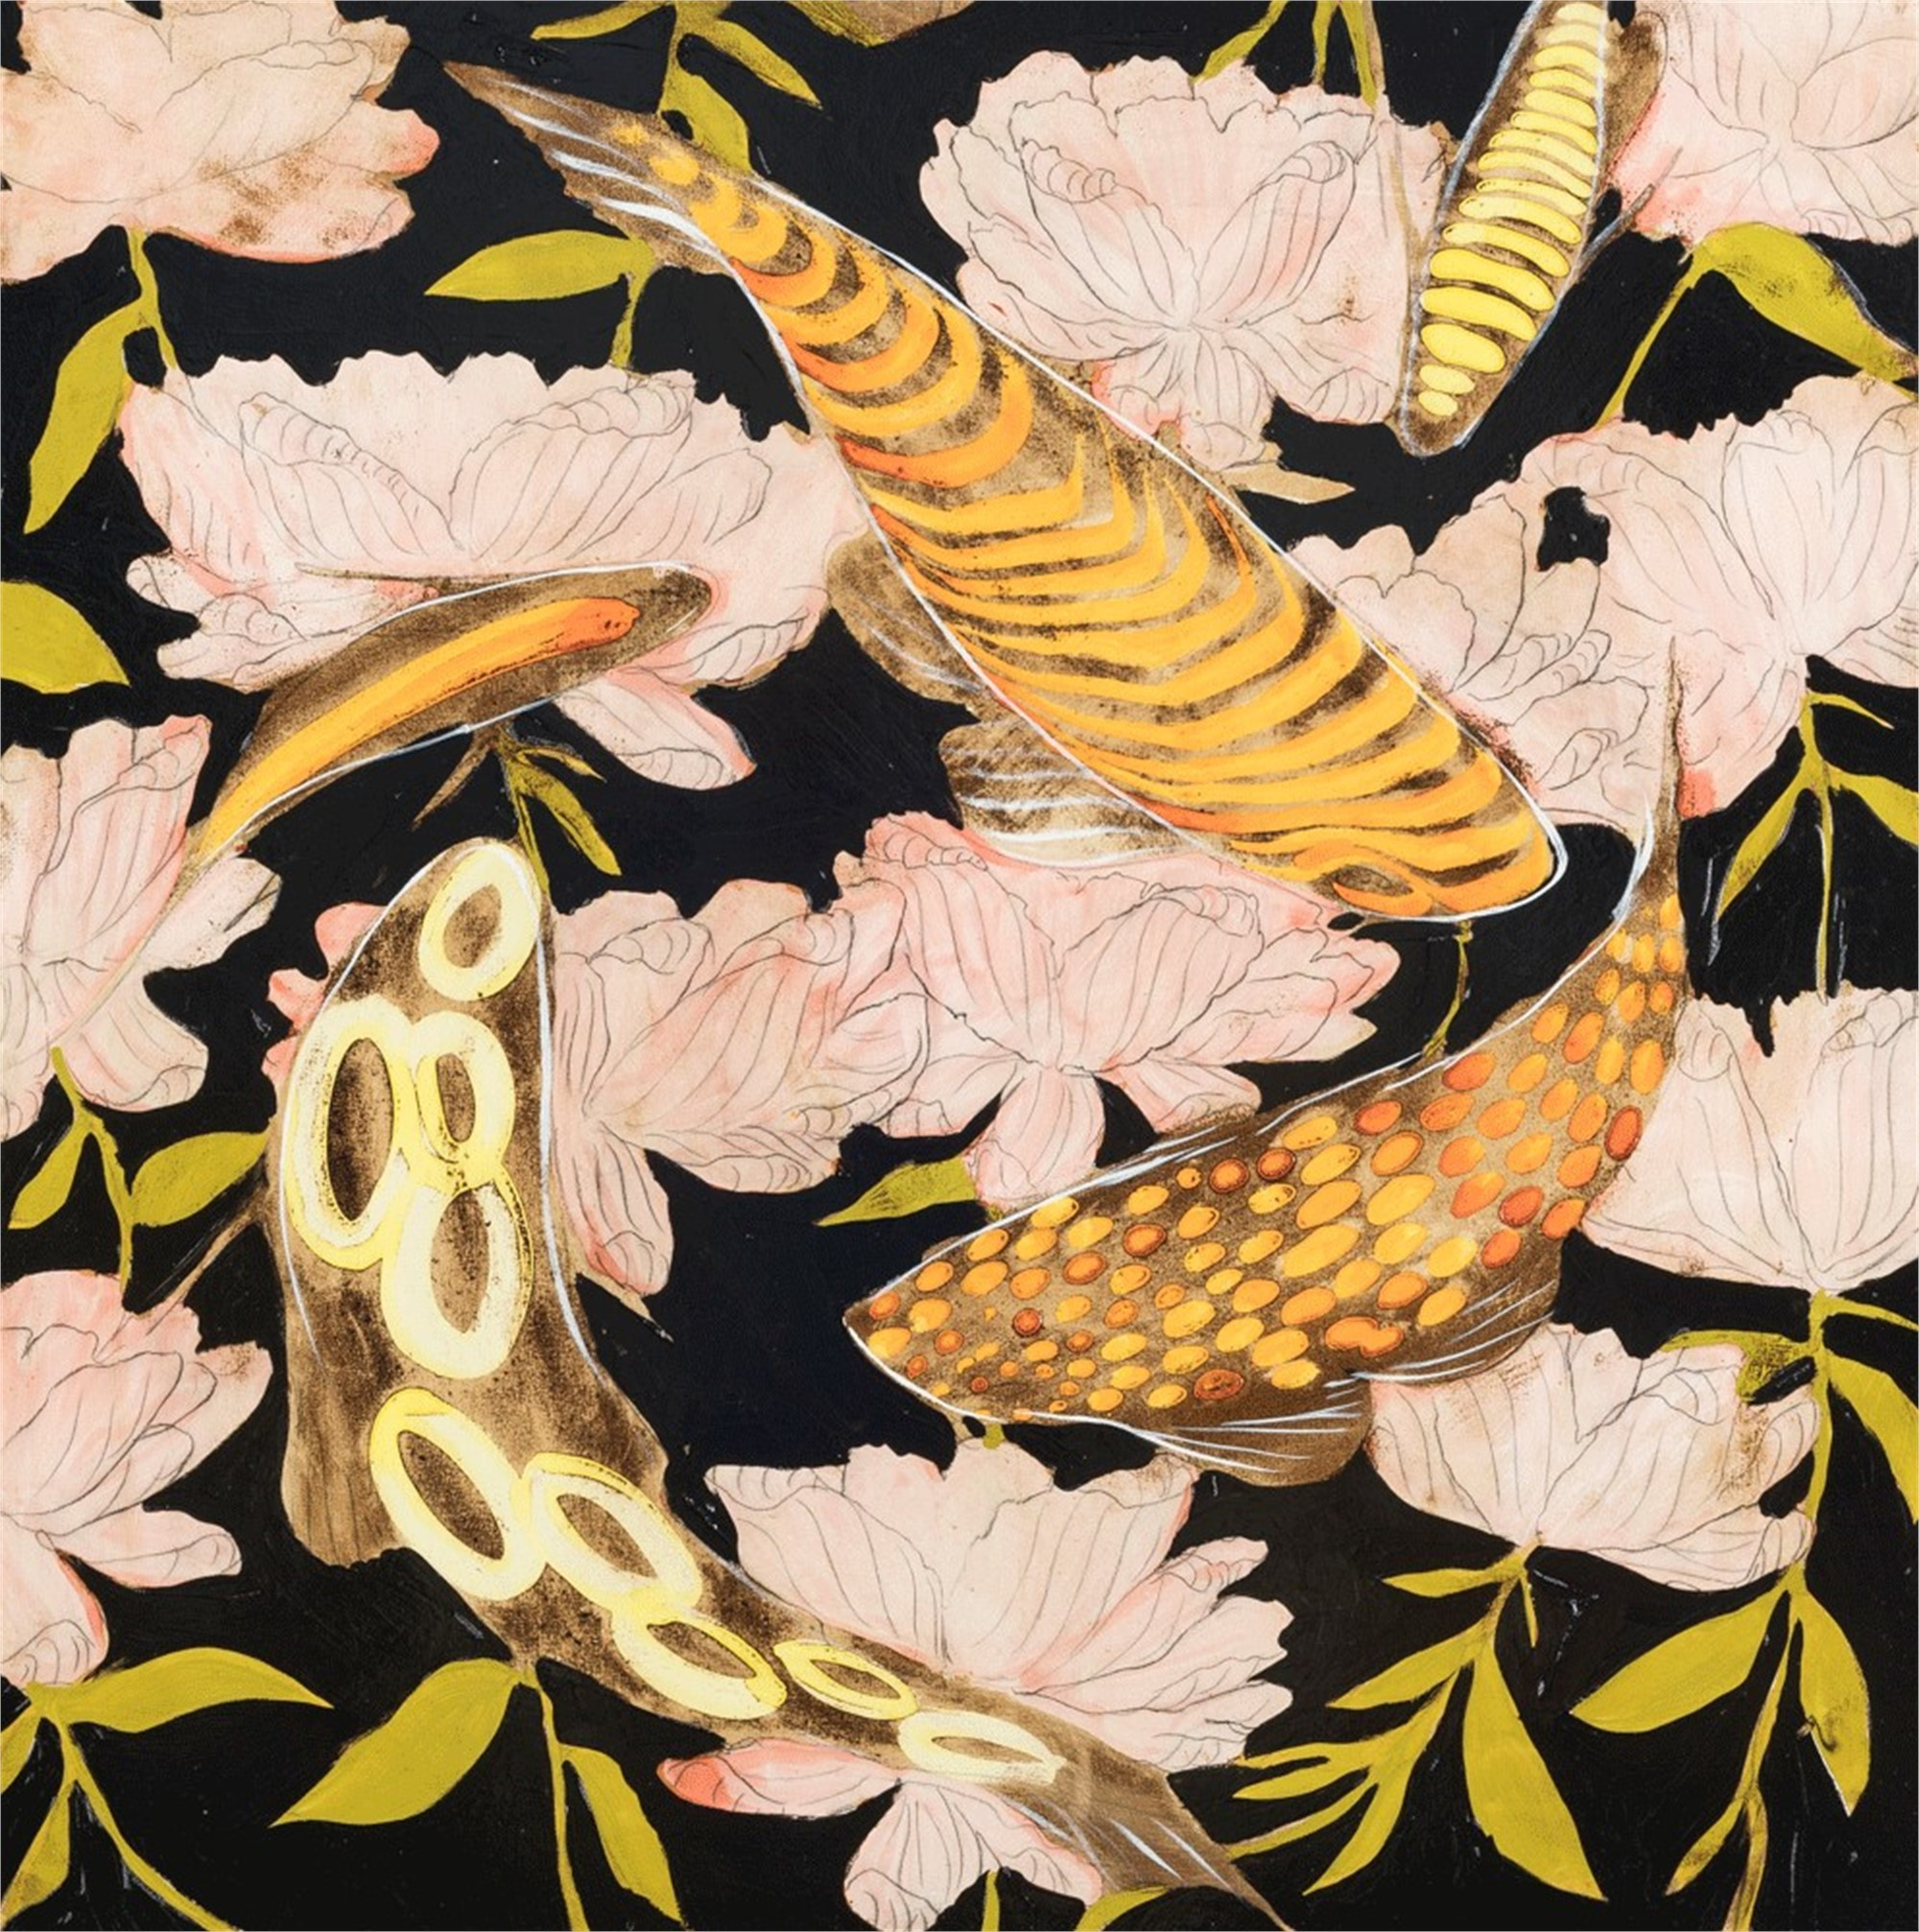 A Midnight Koi and Peonies by Joseph Bradley